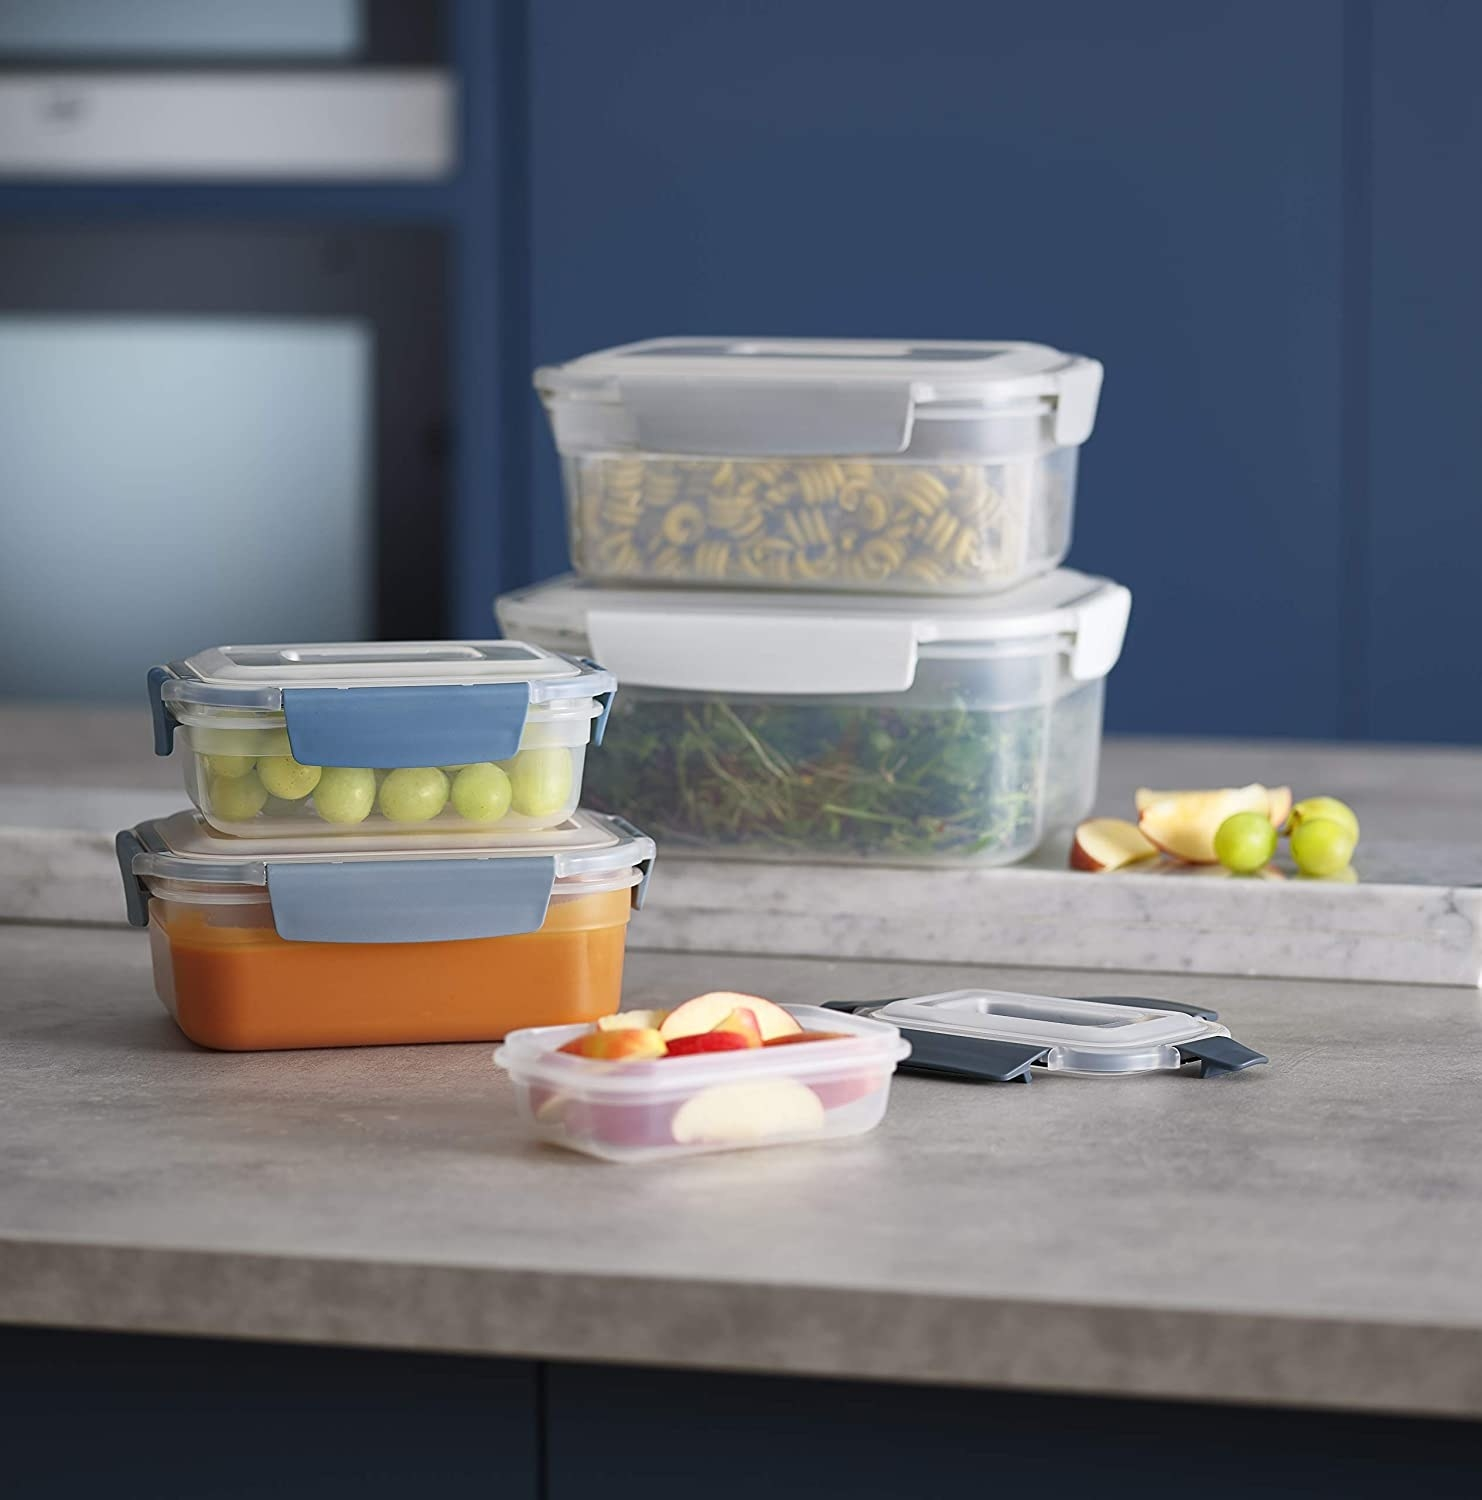 The containers, featuring the lockable snap-together lids